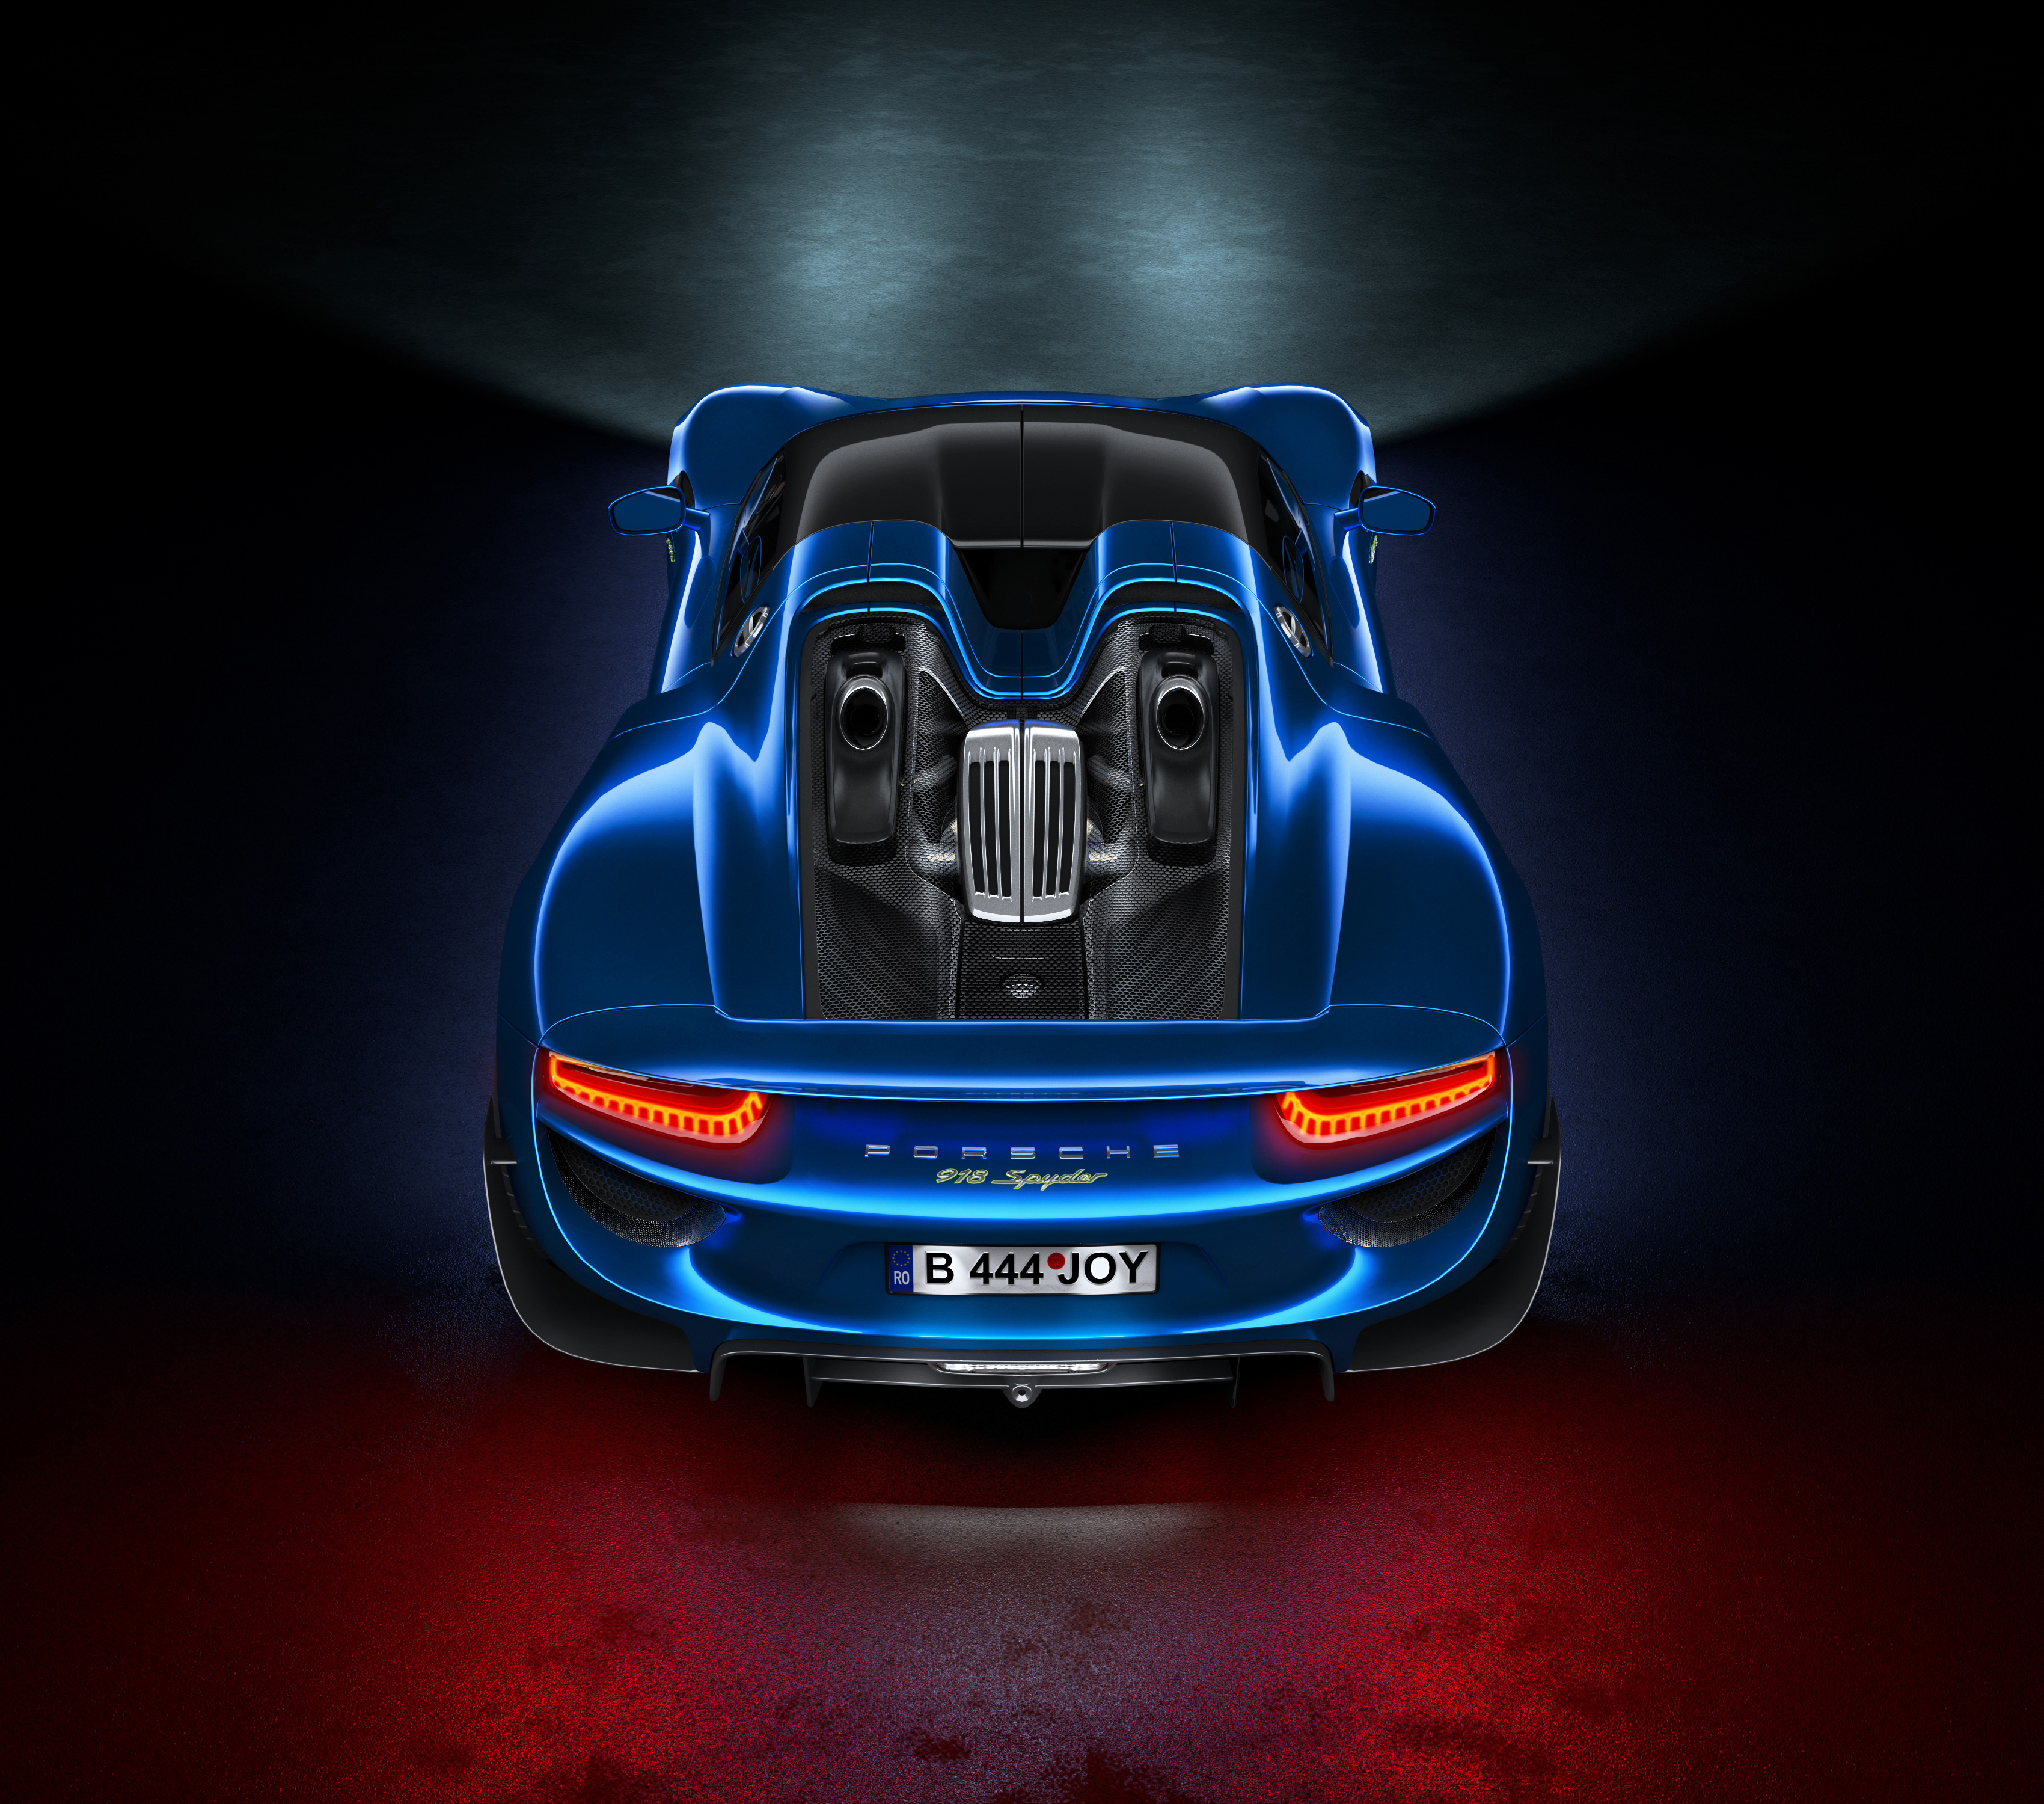 Porsche 918 Hybrid Hd Cars 4k Wallpapers Images Backgrounds Photos And Pictures